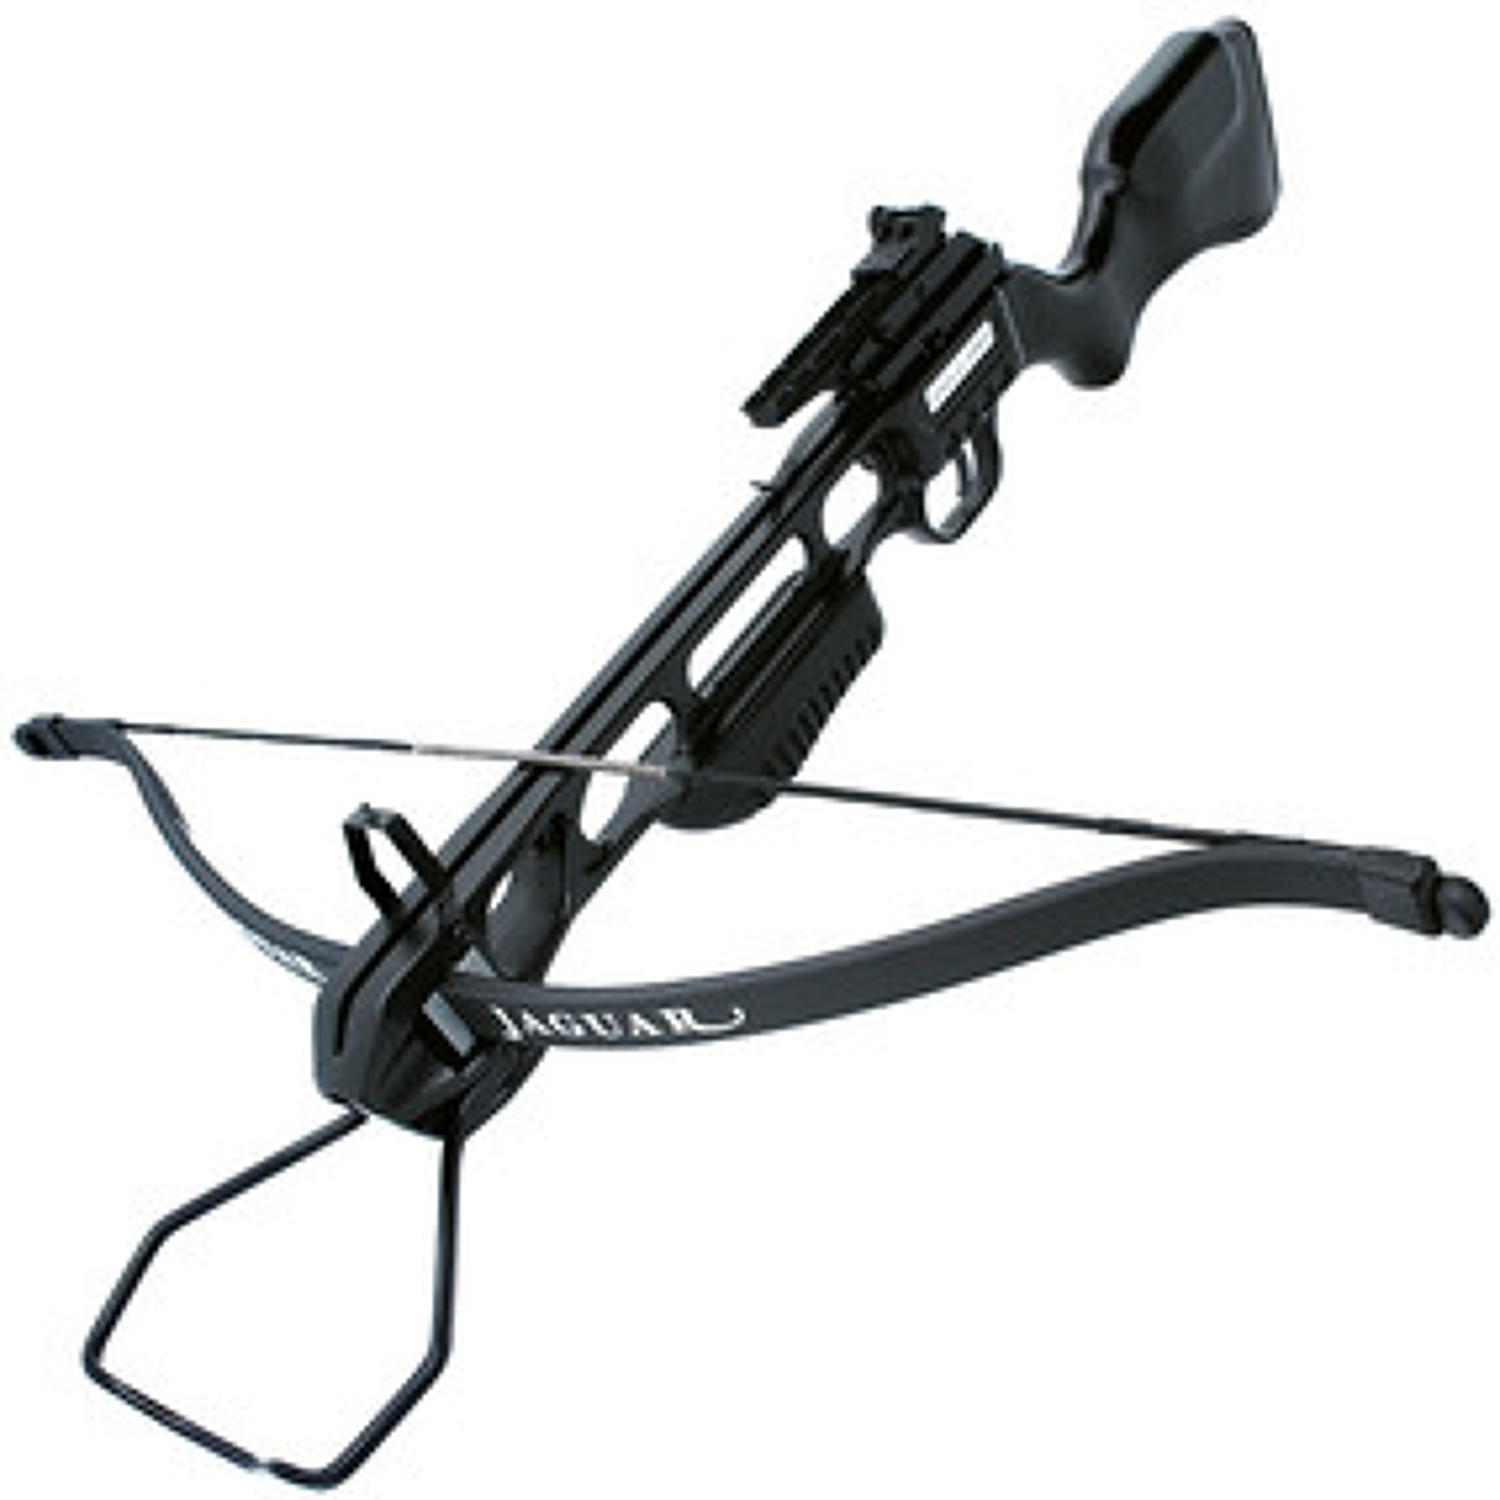 Anglo Arms - Jaguar 175lb Recurve Crossbow in Sports / Anglo